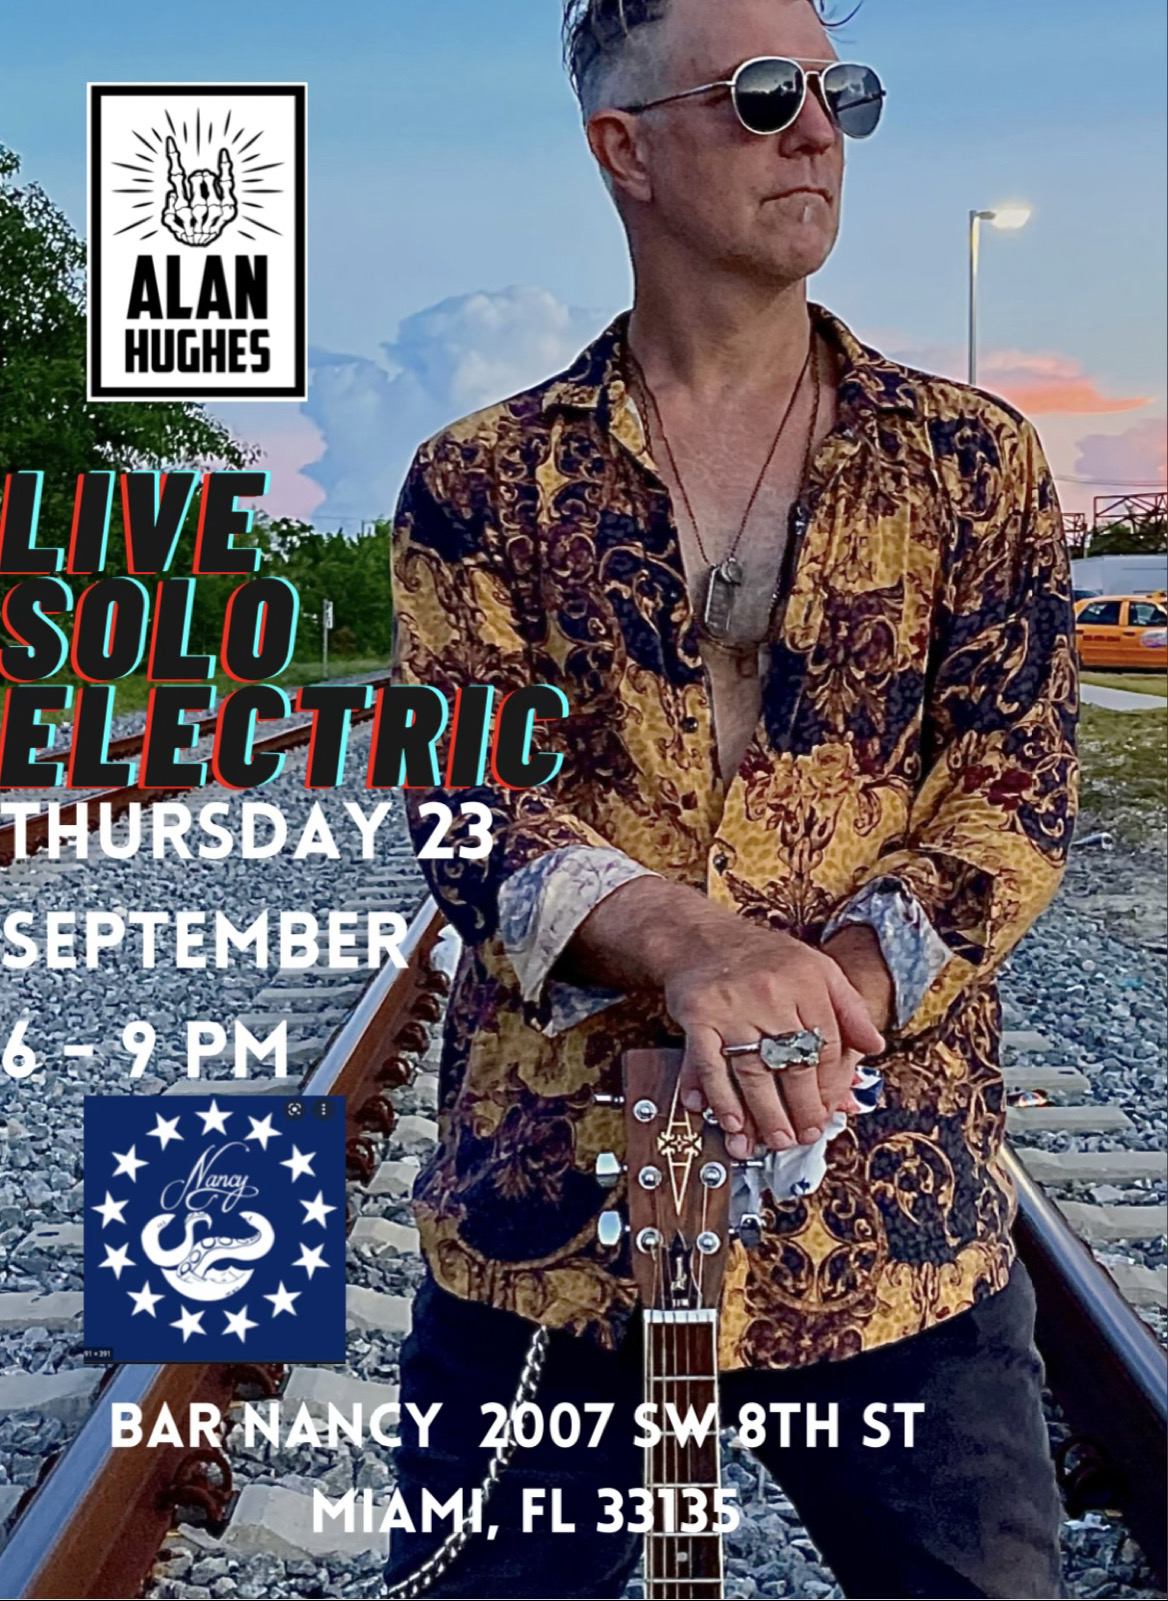 Alan Hughes - Live Solo Electric - Happy Hour at Bar Nancy - September 23 - Time 6pm